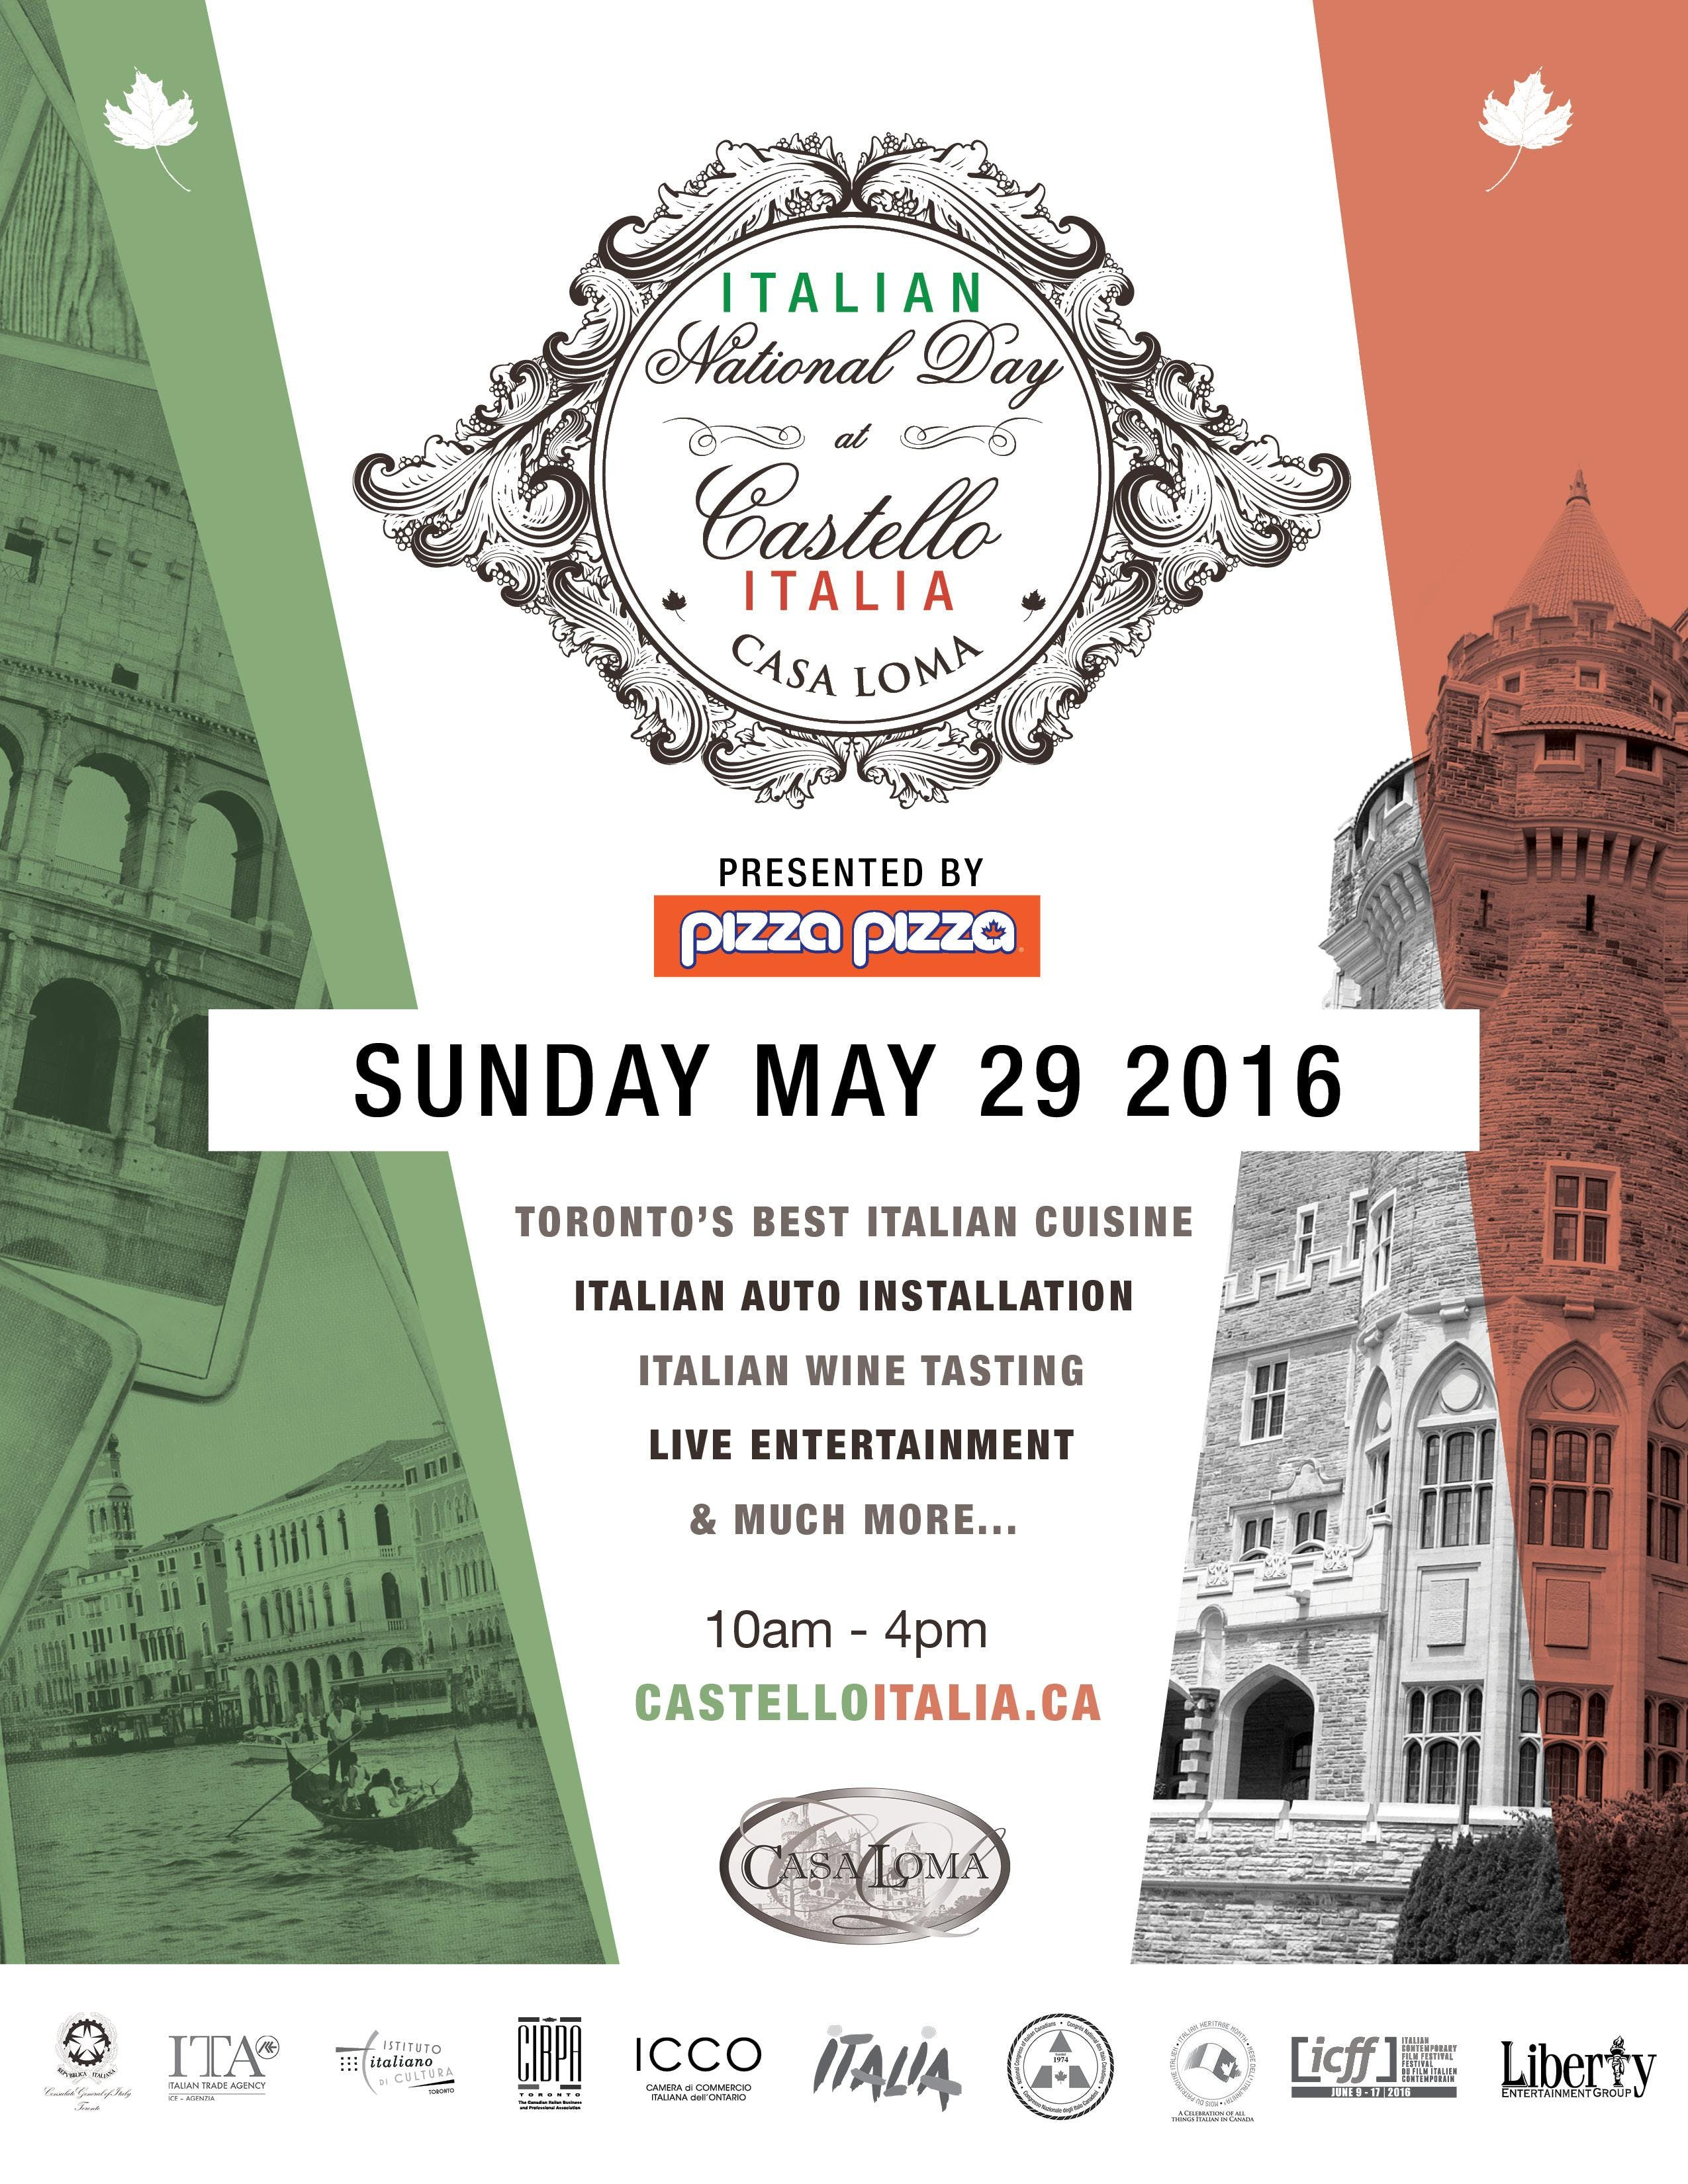 Italian National Day Castello Italia at Casa Loma 2018